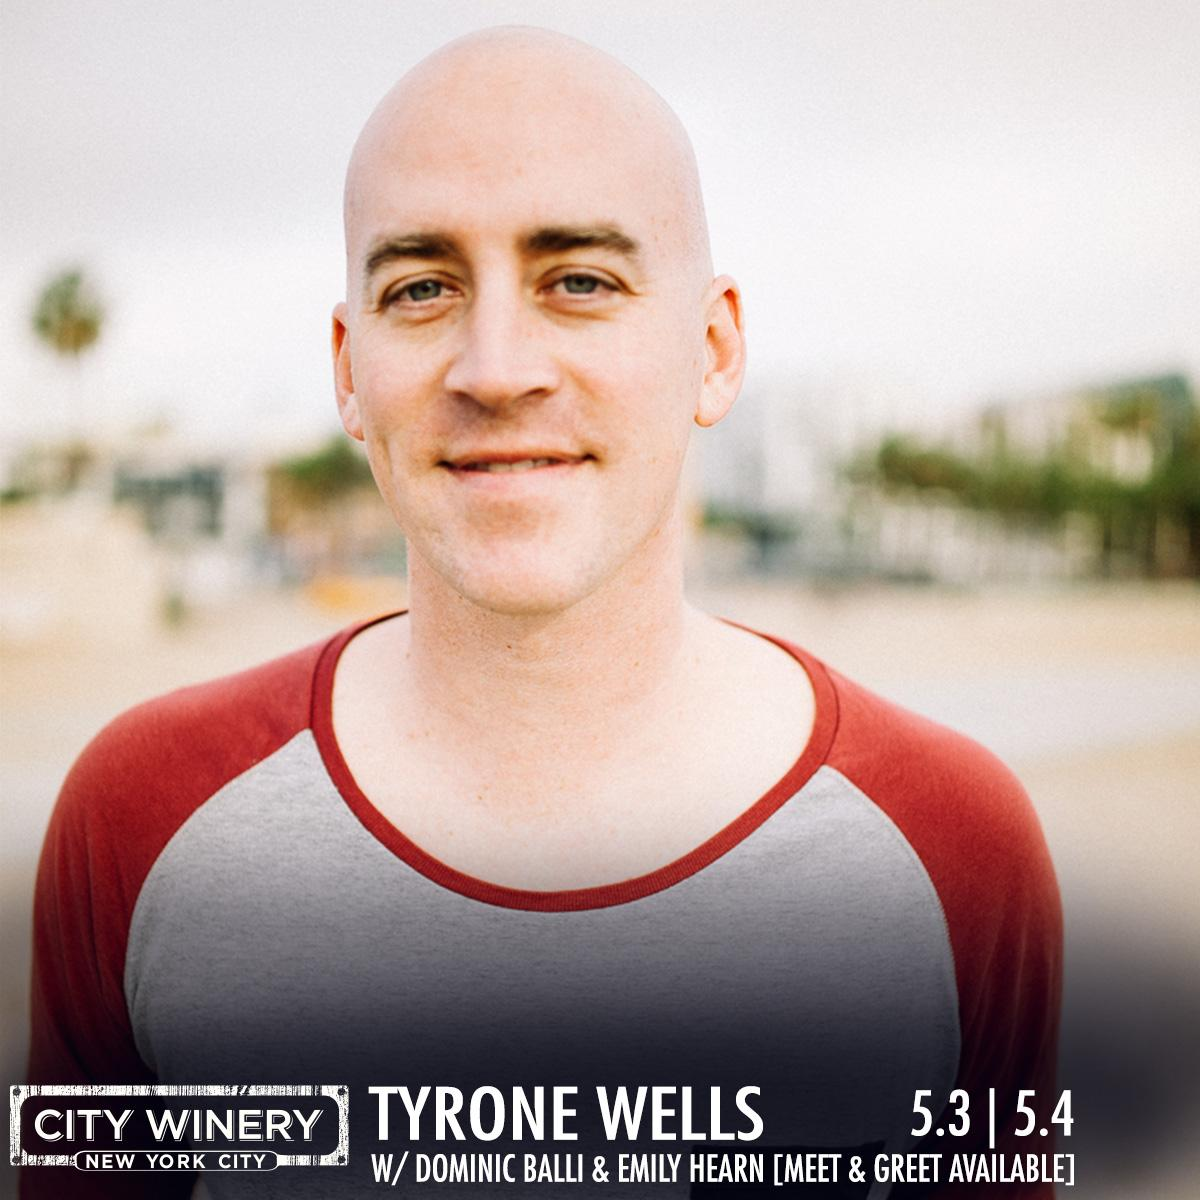 Retweet for a chance to win 2 tix to @tyronewells w/ @dominicballi & @emilyhearn on 5/4!Winners will be notified Fri! http://t.co/xAPnCDAceD